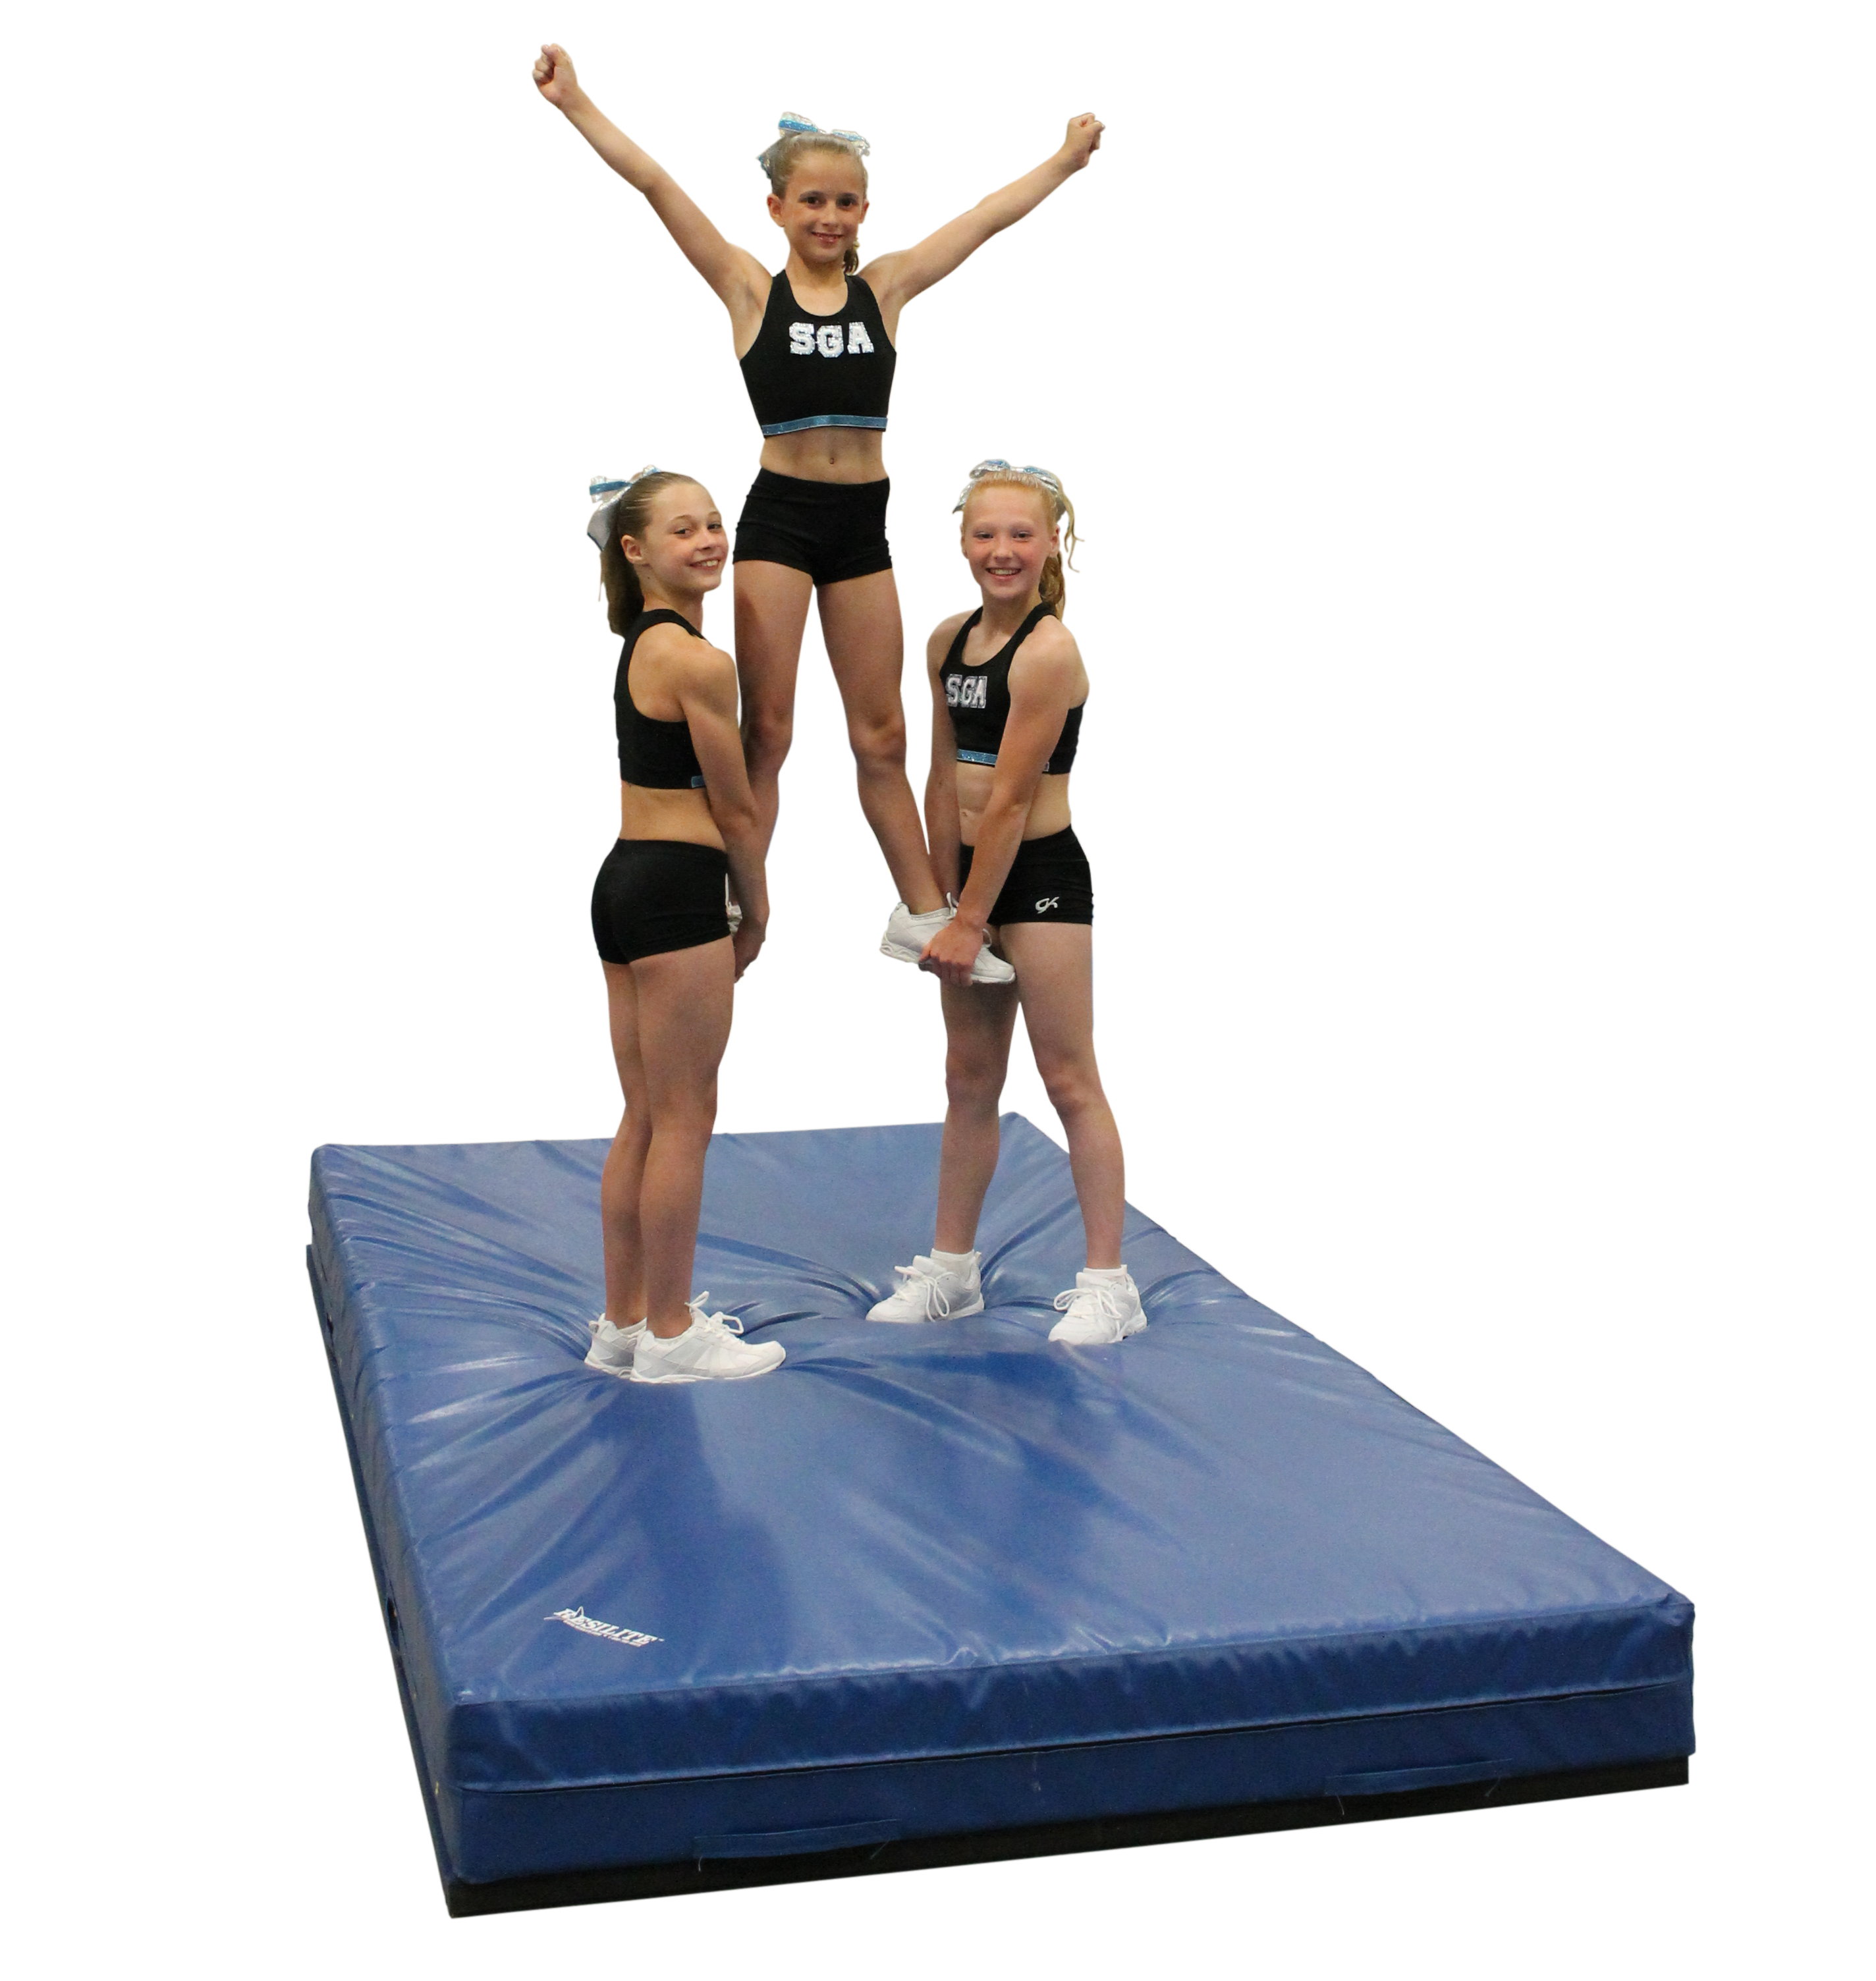 cheap manufacturers com yoga and at eco alibaba home gymnastics gymnastic for mats equipment suppliers showroom cheer friendly